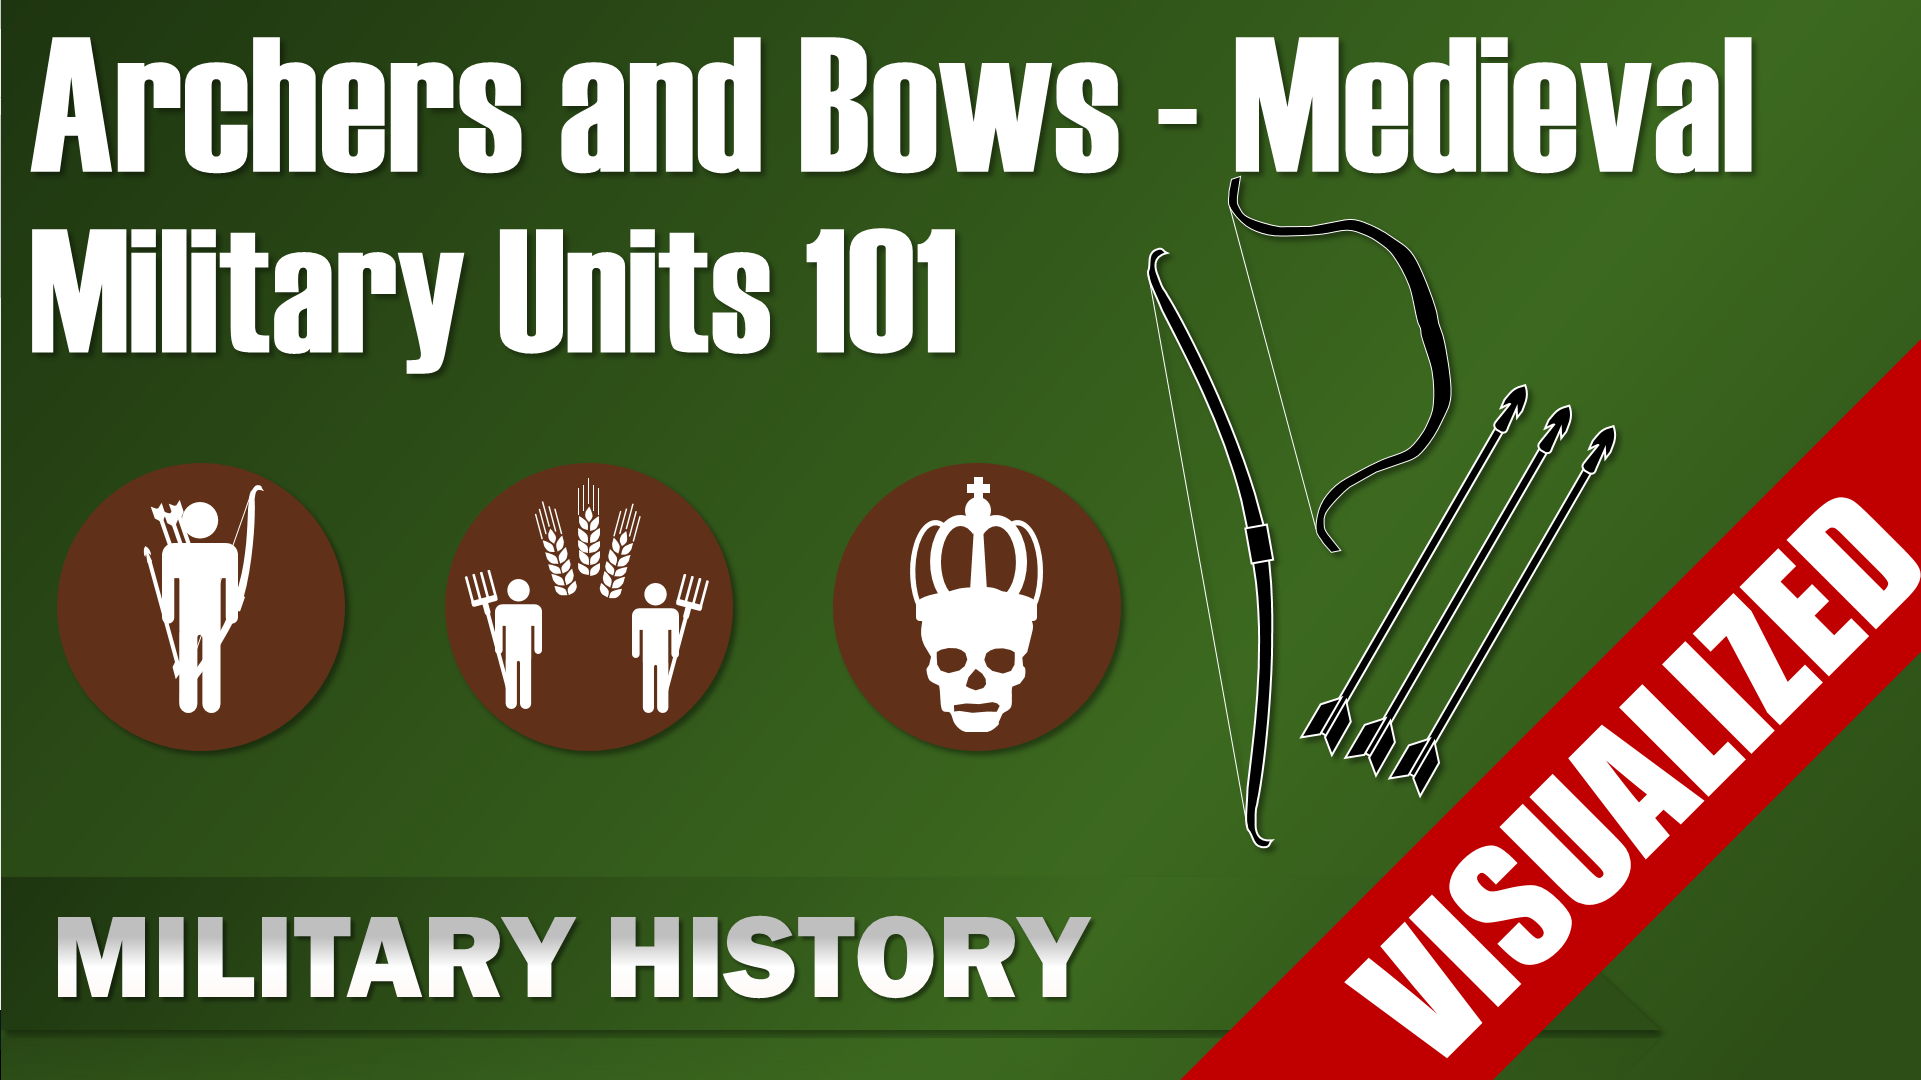 Archers And Bows Medieval Units 101